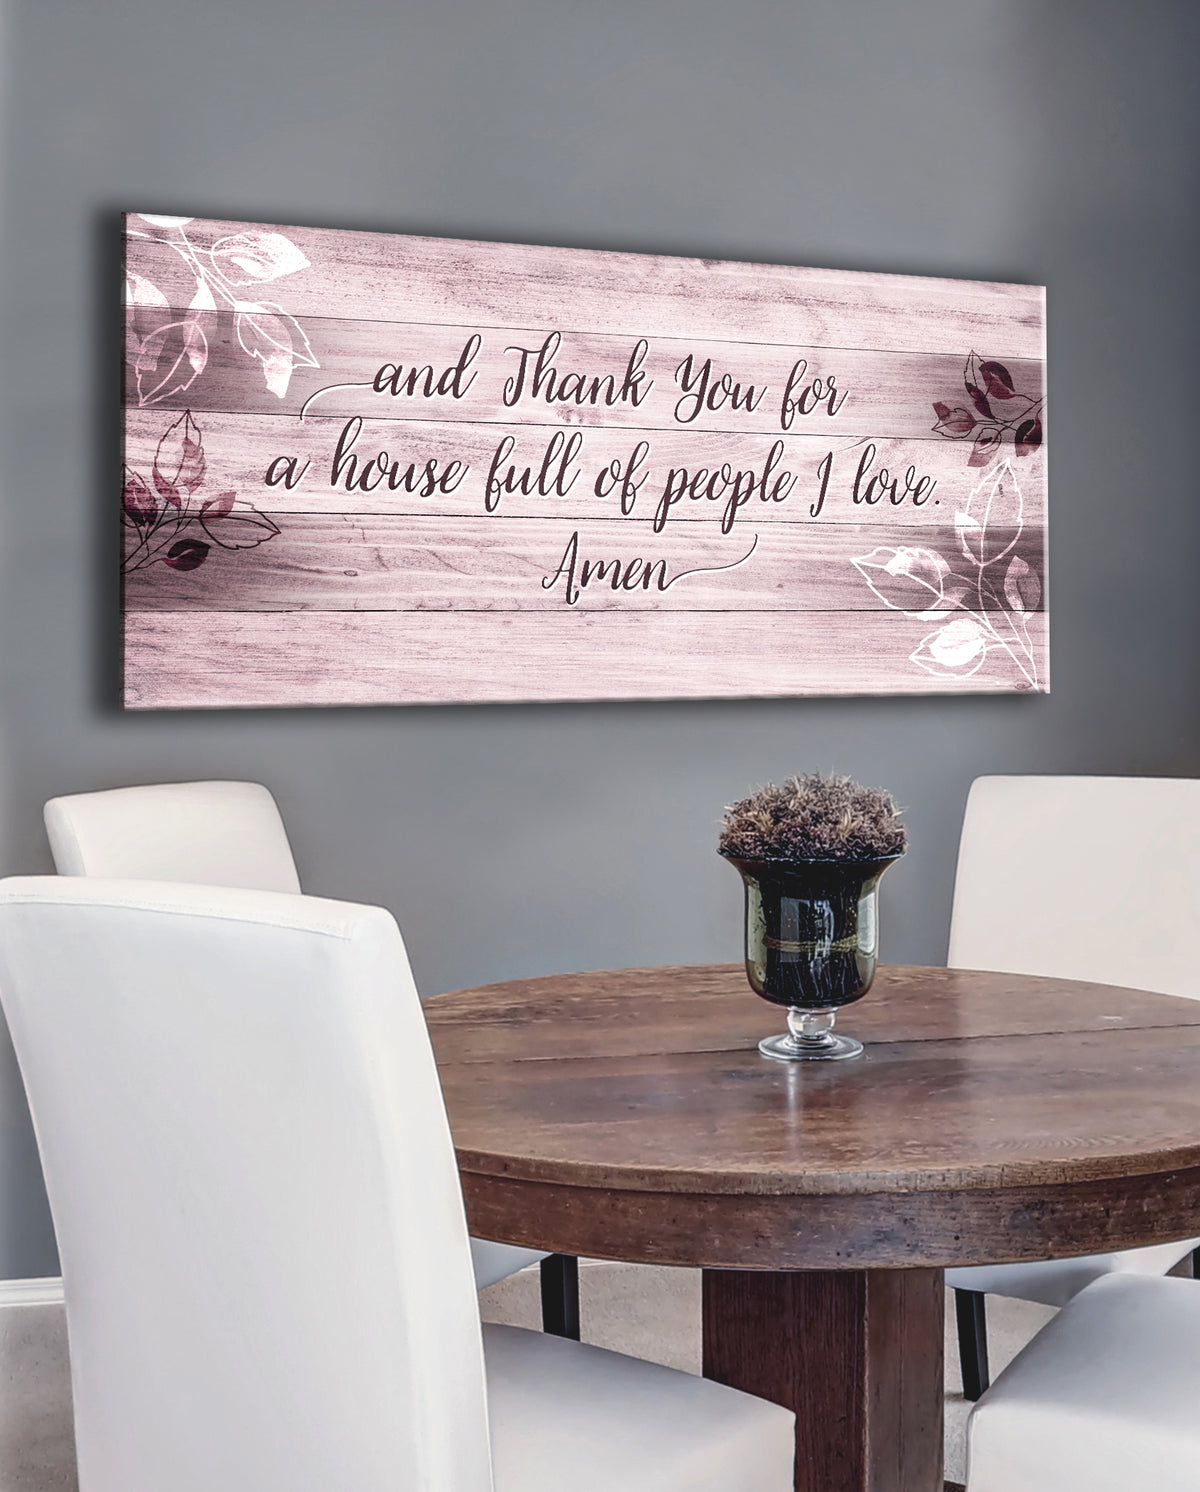 wood sign and thank you for a house full of people i love amen